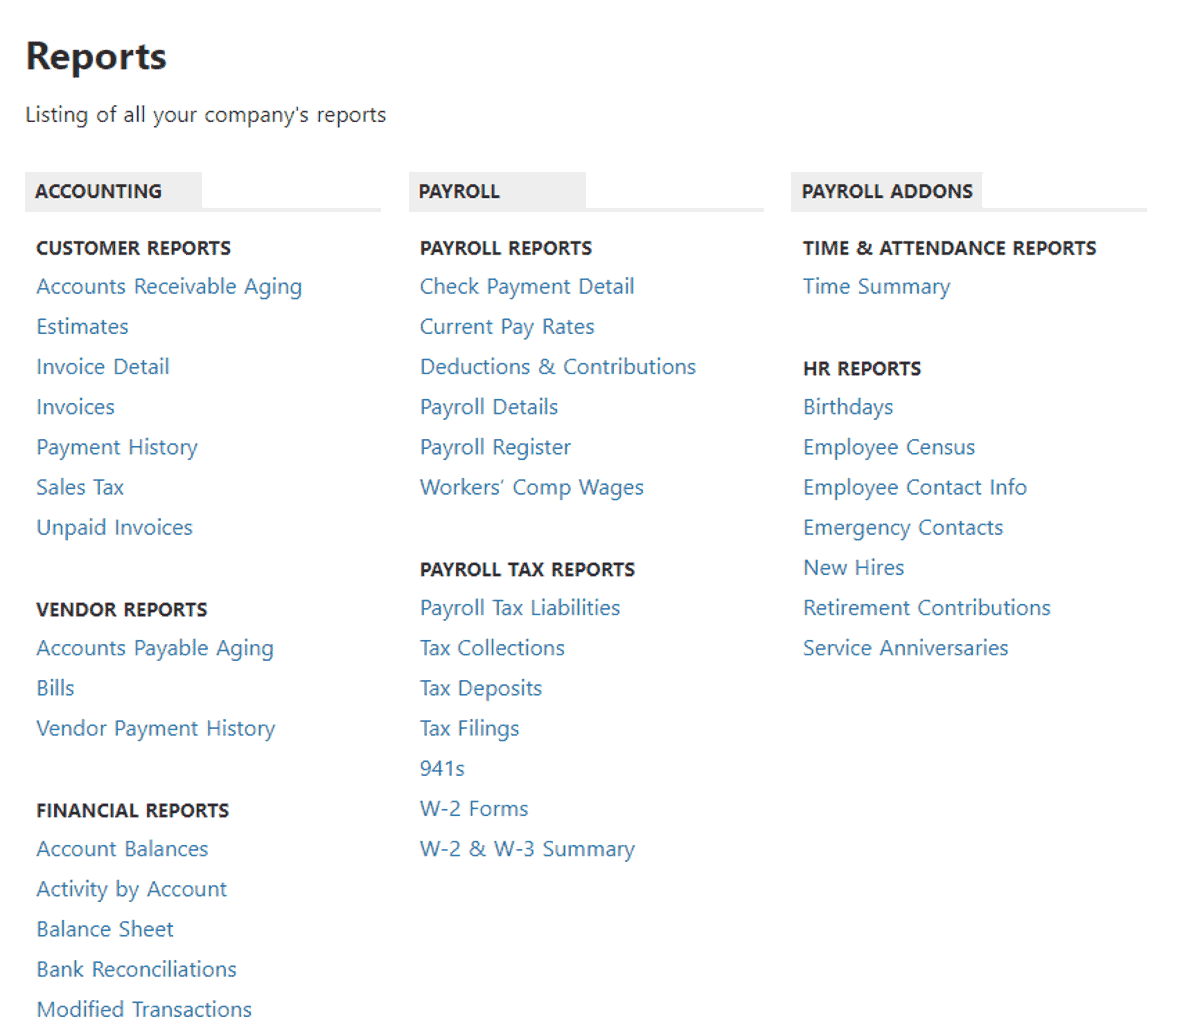 patriot software payroll has tons of reports